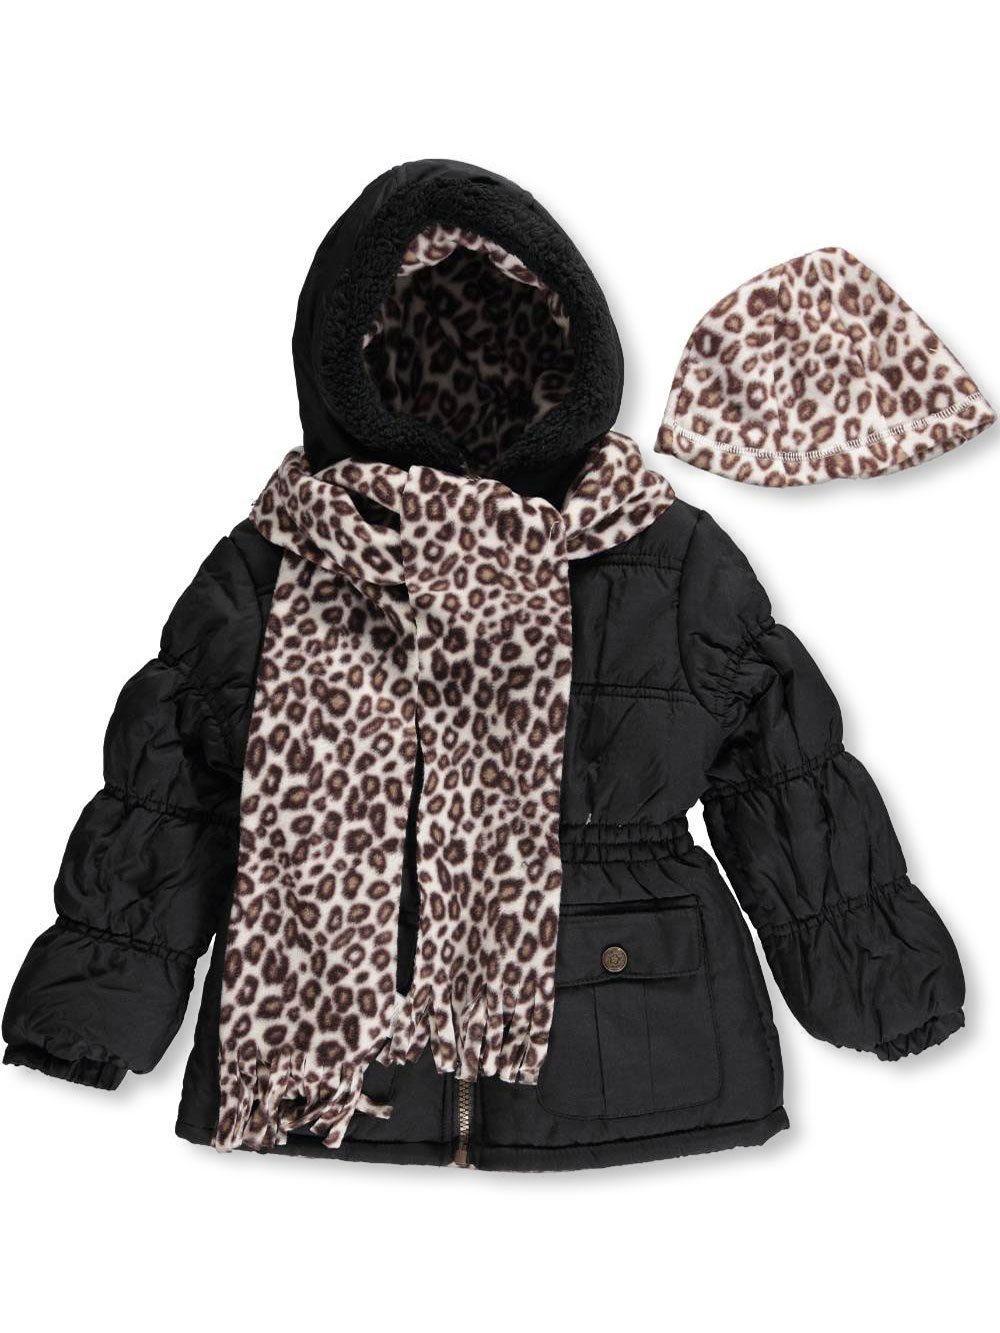 Image of Pink Platinum Little Girls Leopard Equip Insulated Parka with Accessories Sizes 4  6X